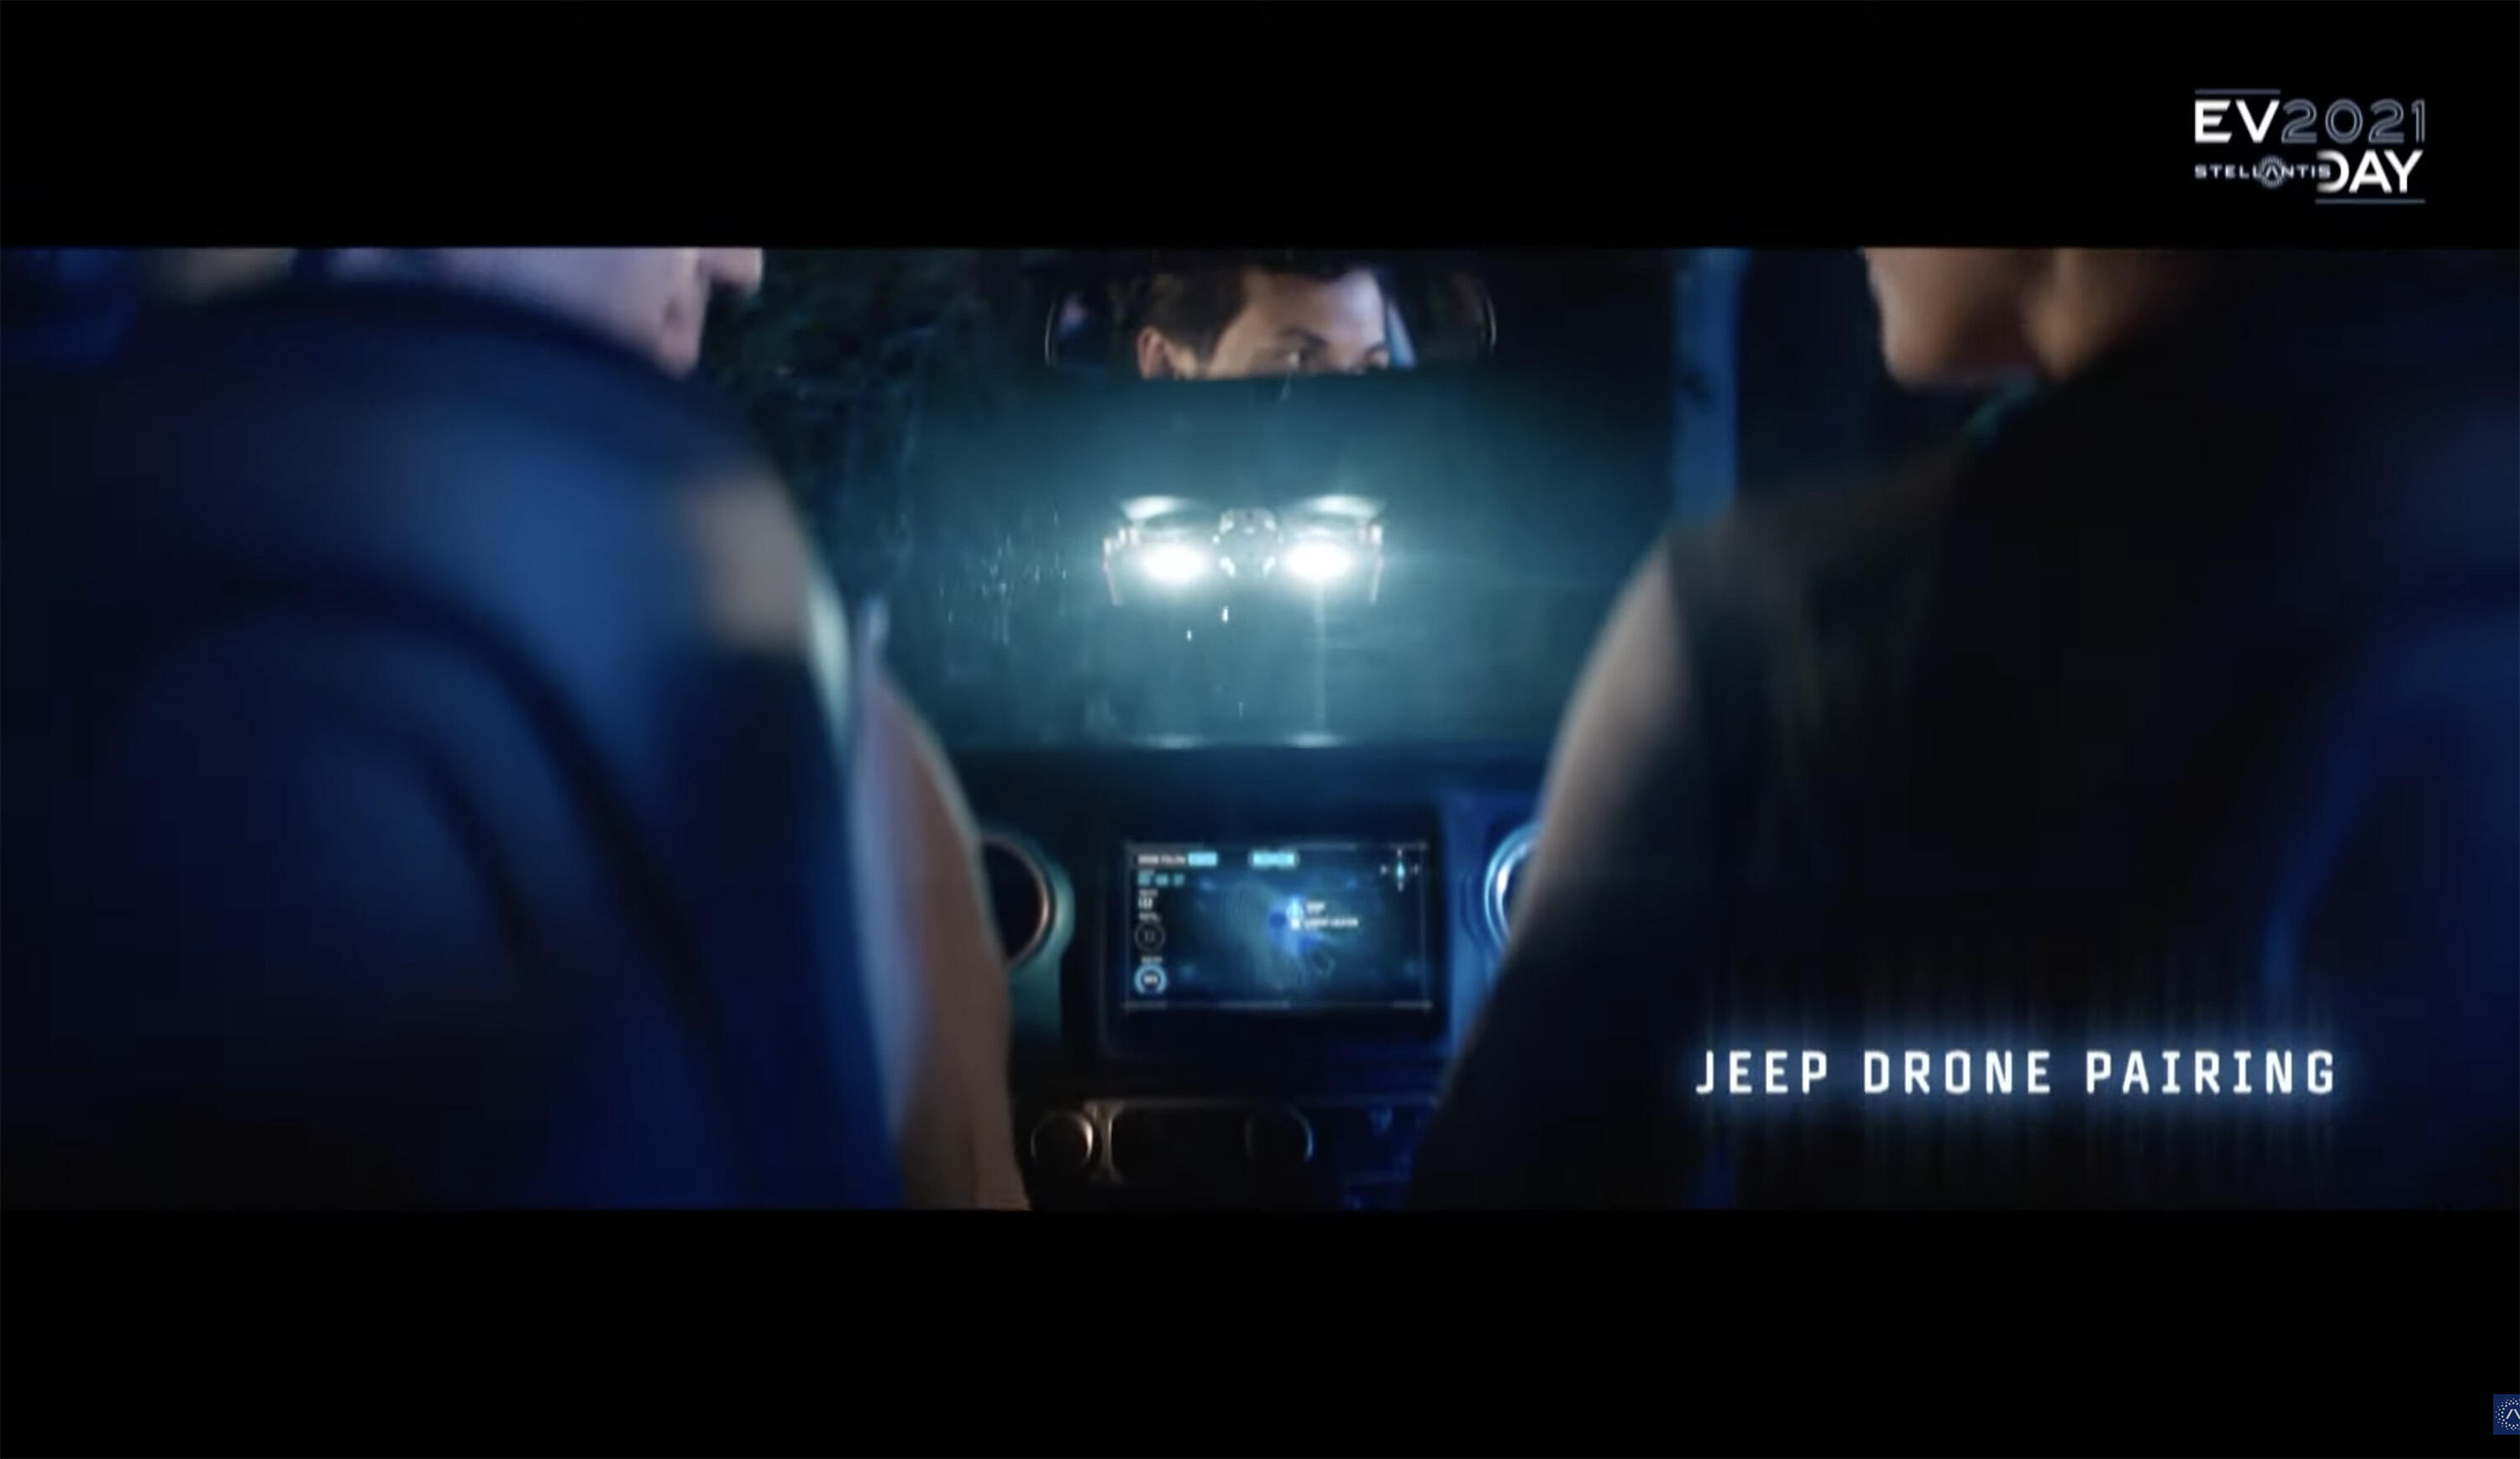 Jeep drone pairing